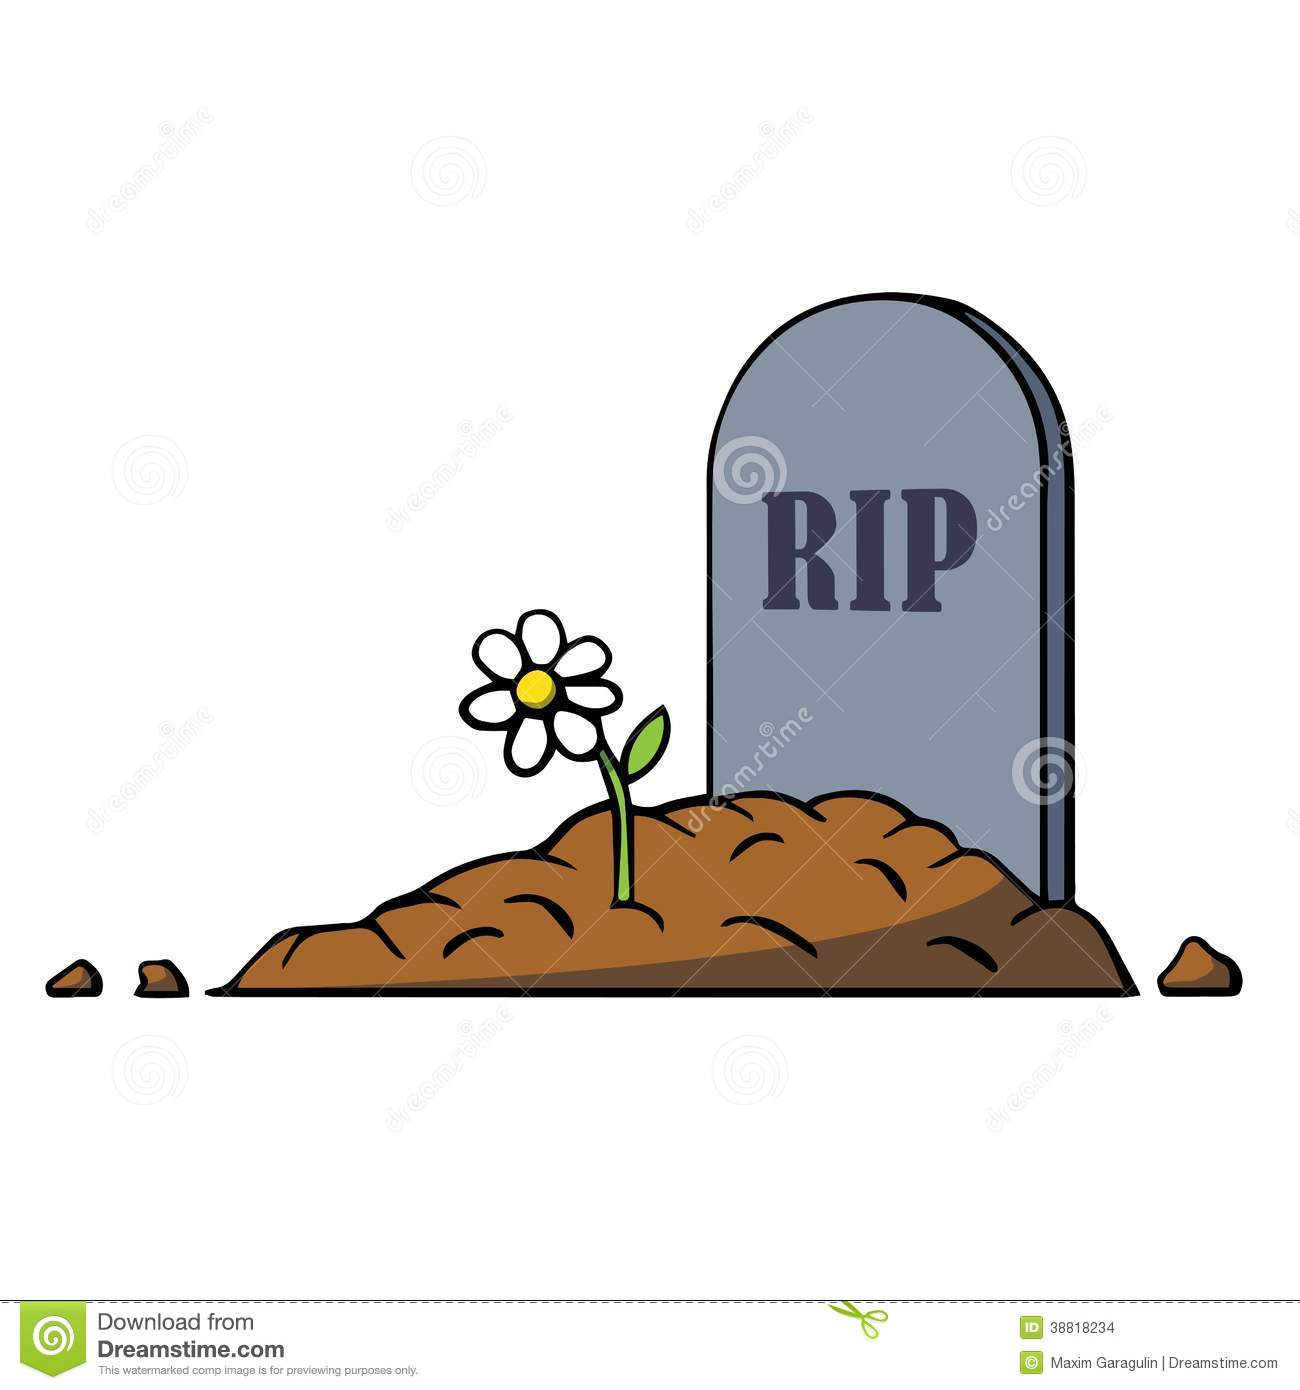 Clipart of a grave freeuse download 97+ Grave Clipart | ClipartLook freeuse download